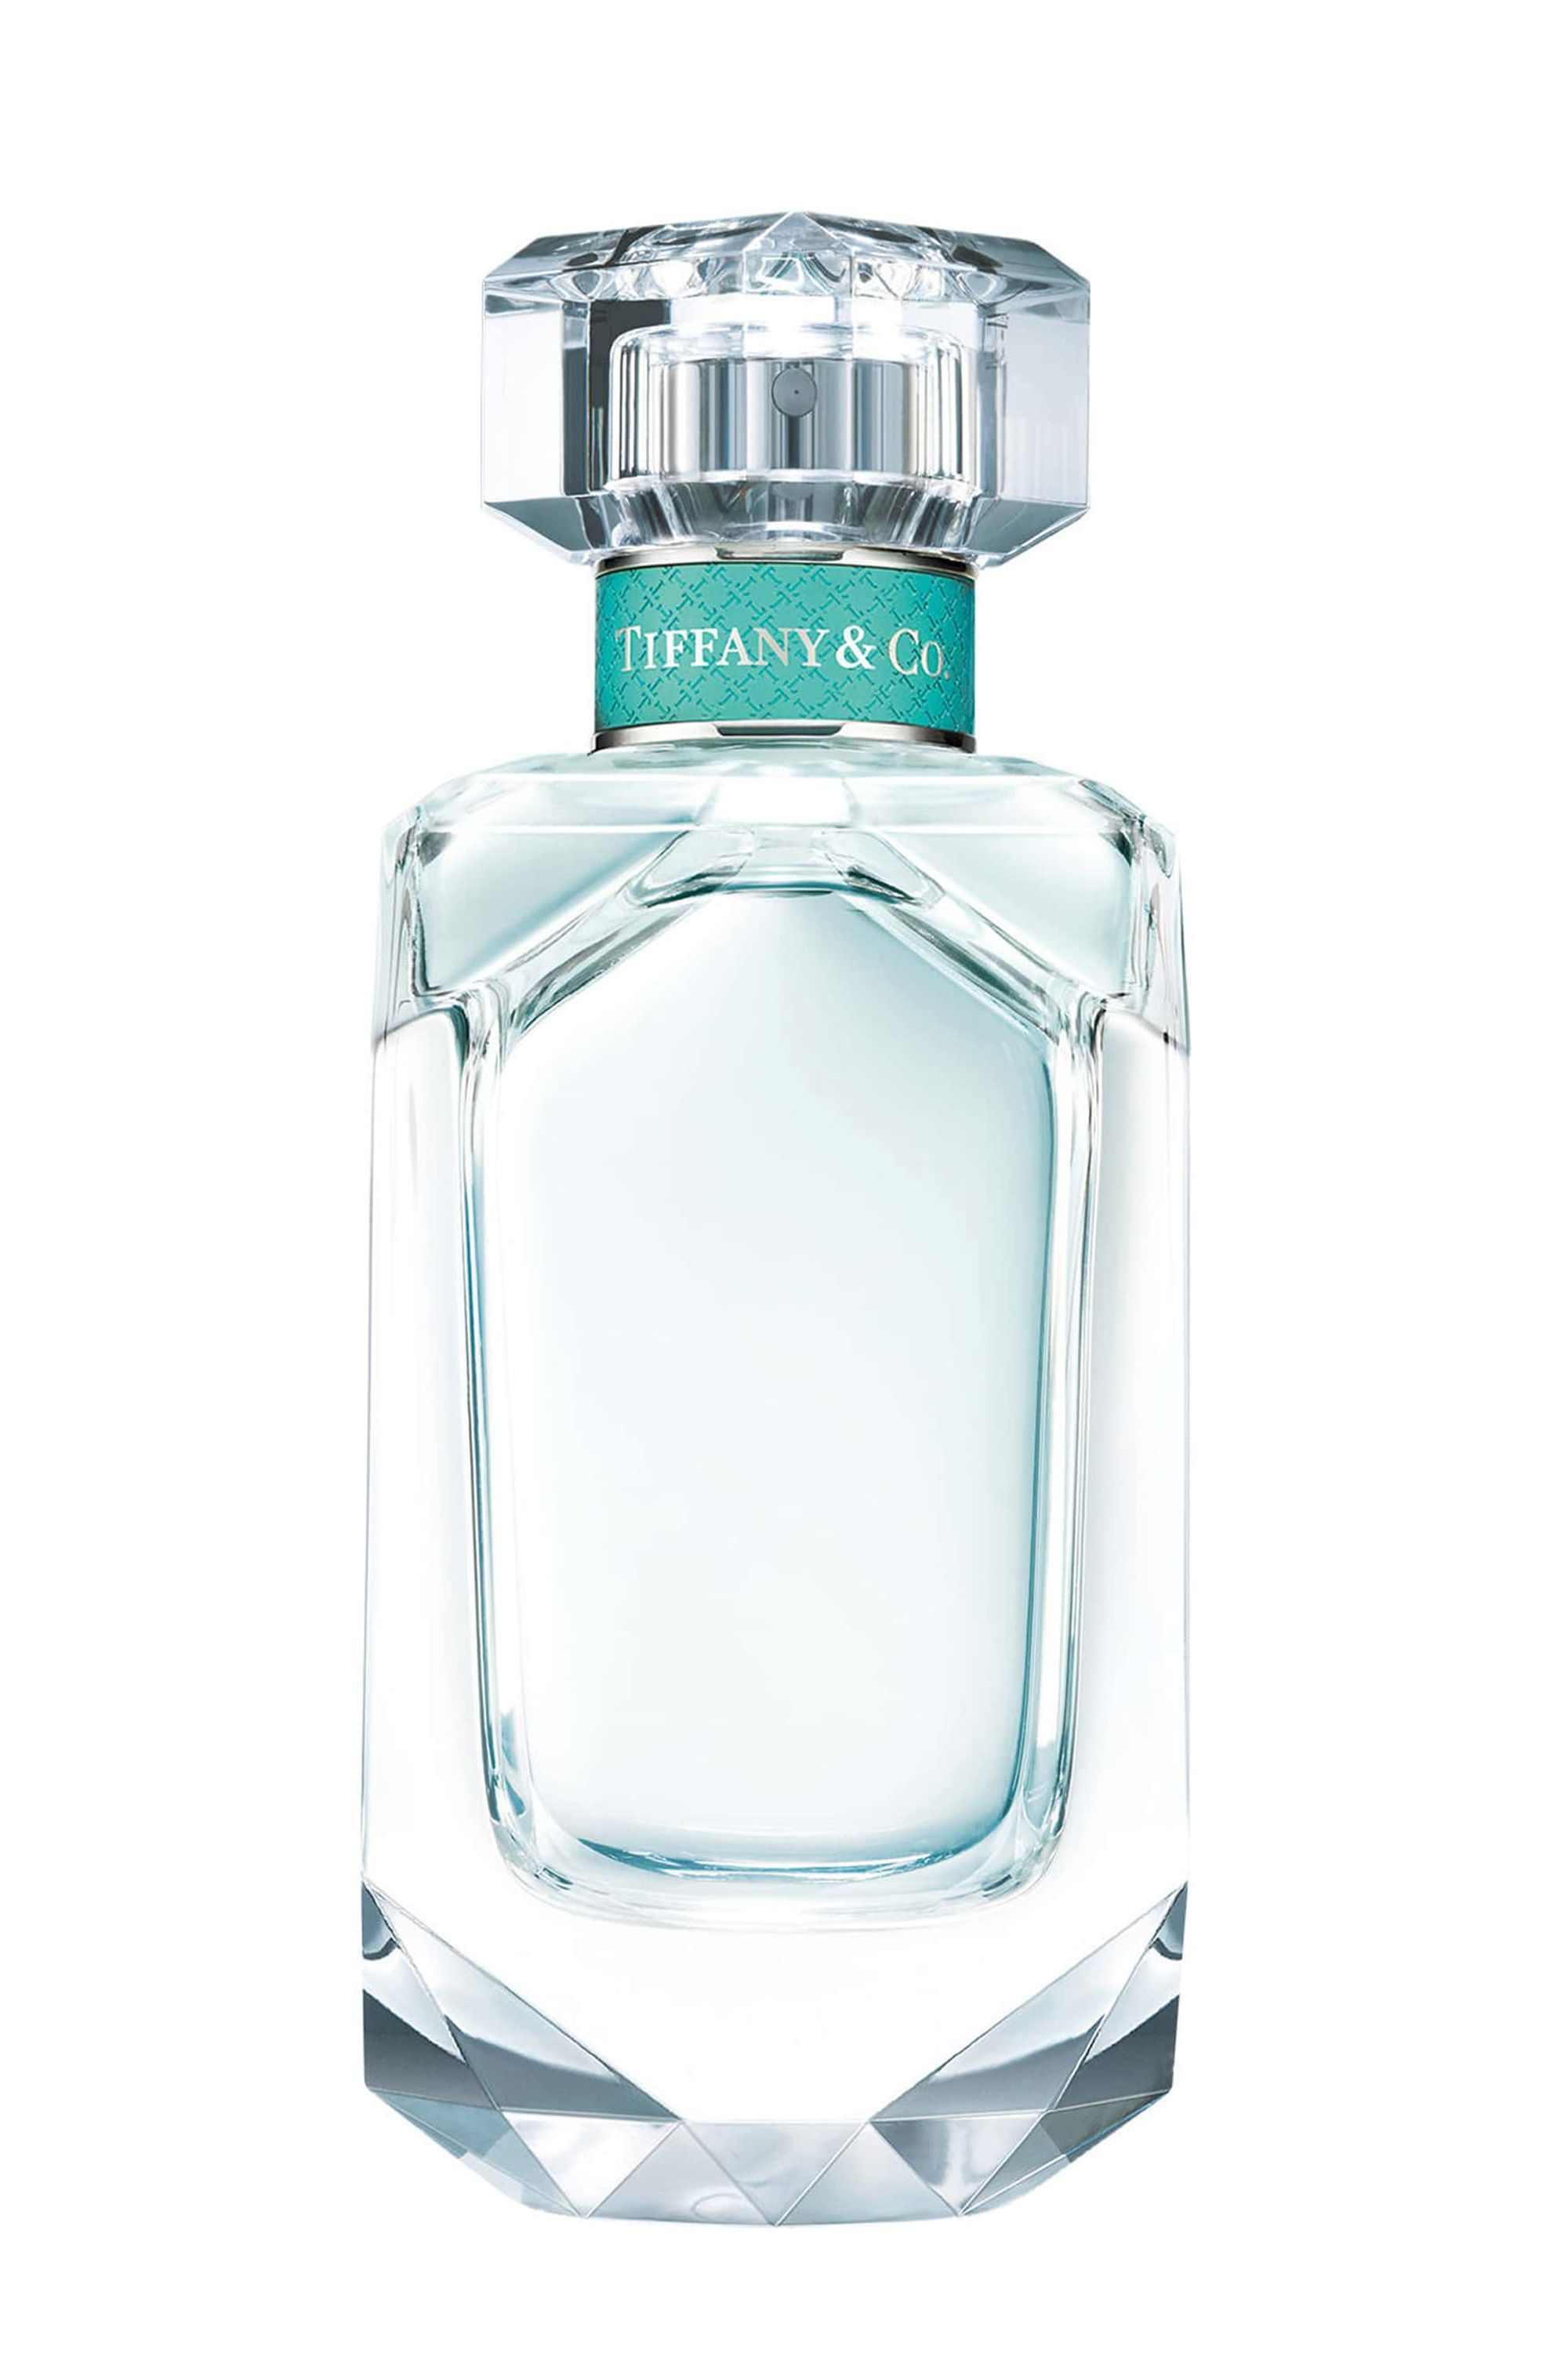 Tiffany Eau de Parfum Tiffany & Co. nordstrom.com $76.00 SHOP NOW A little blue box gift (without the jewelry box price tag).